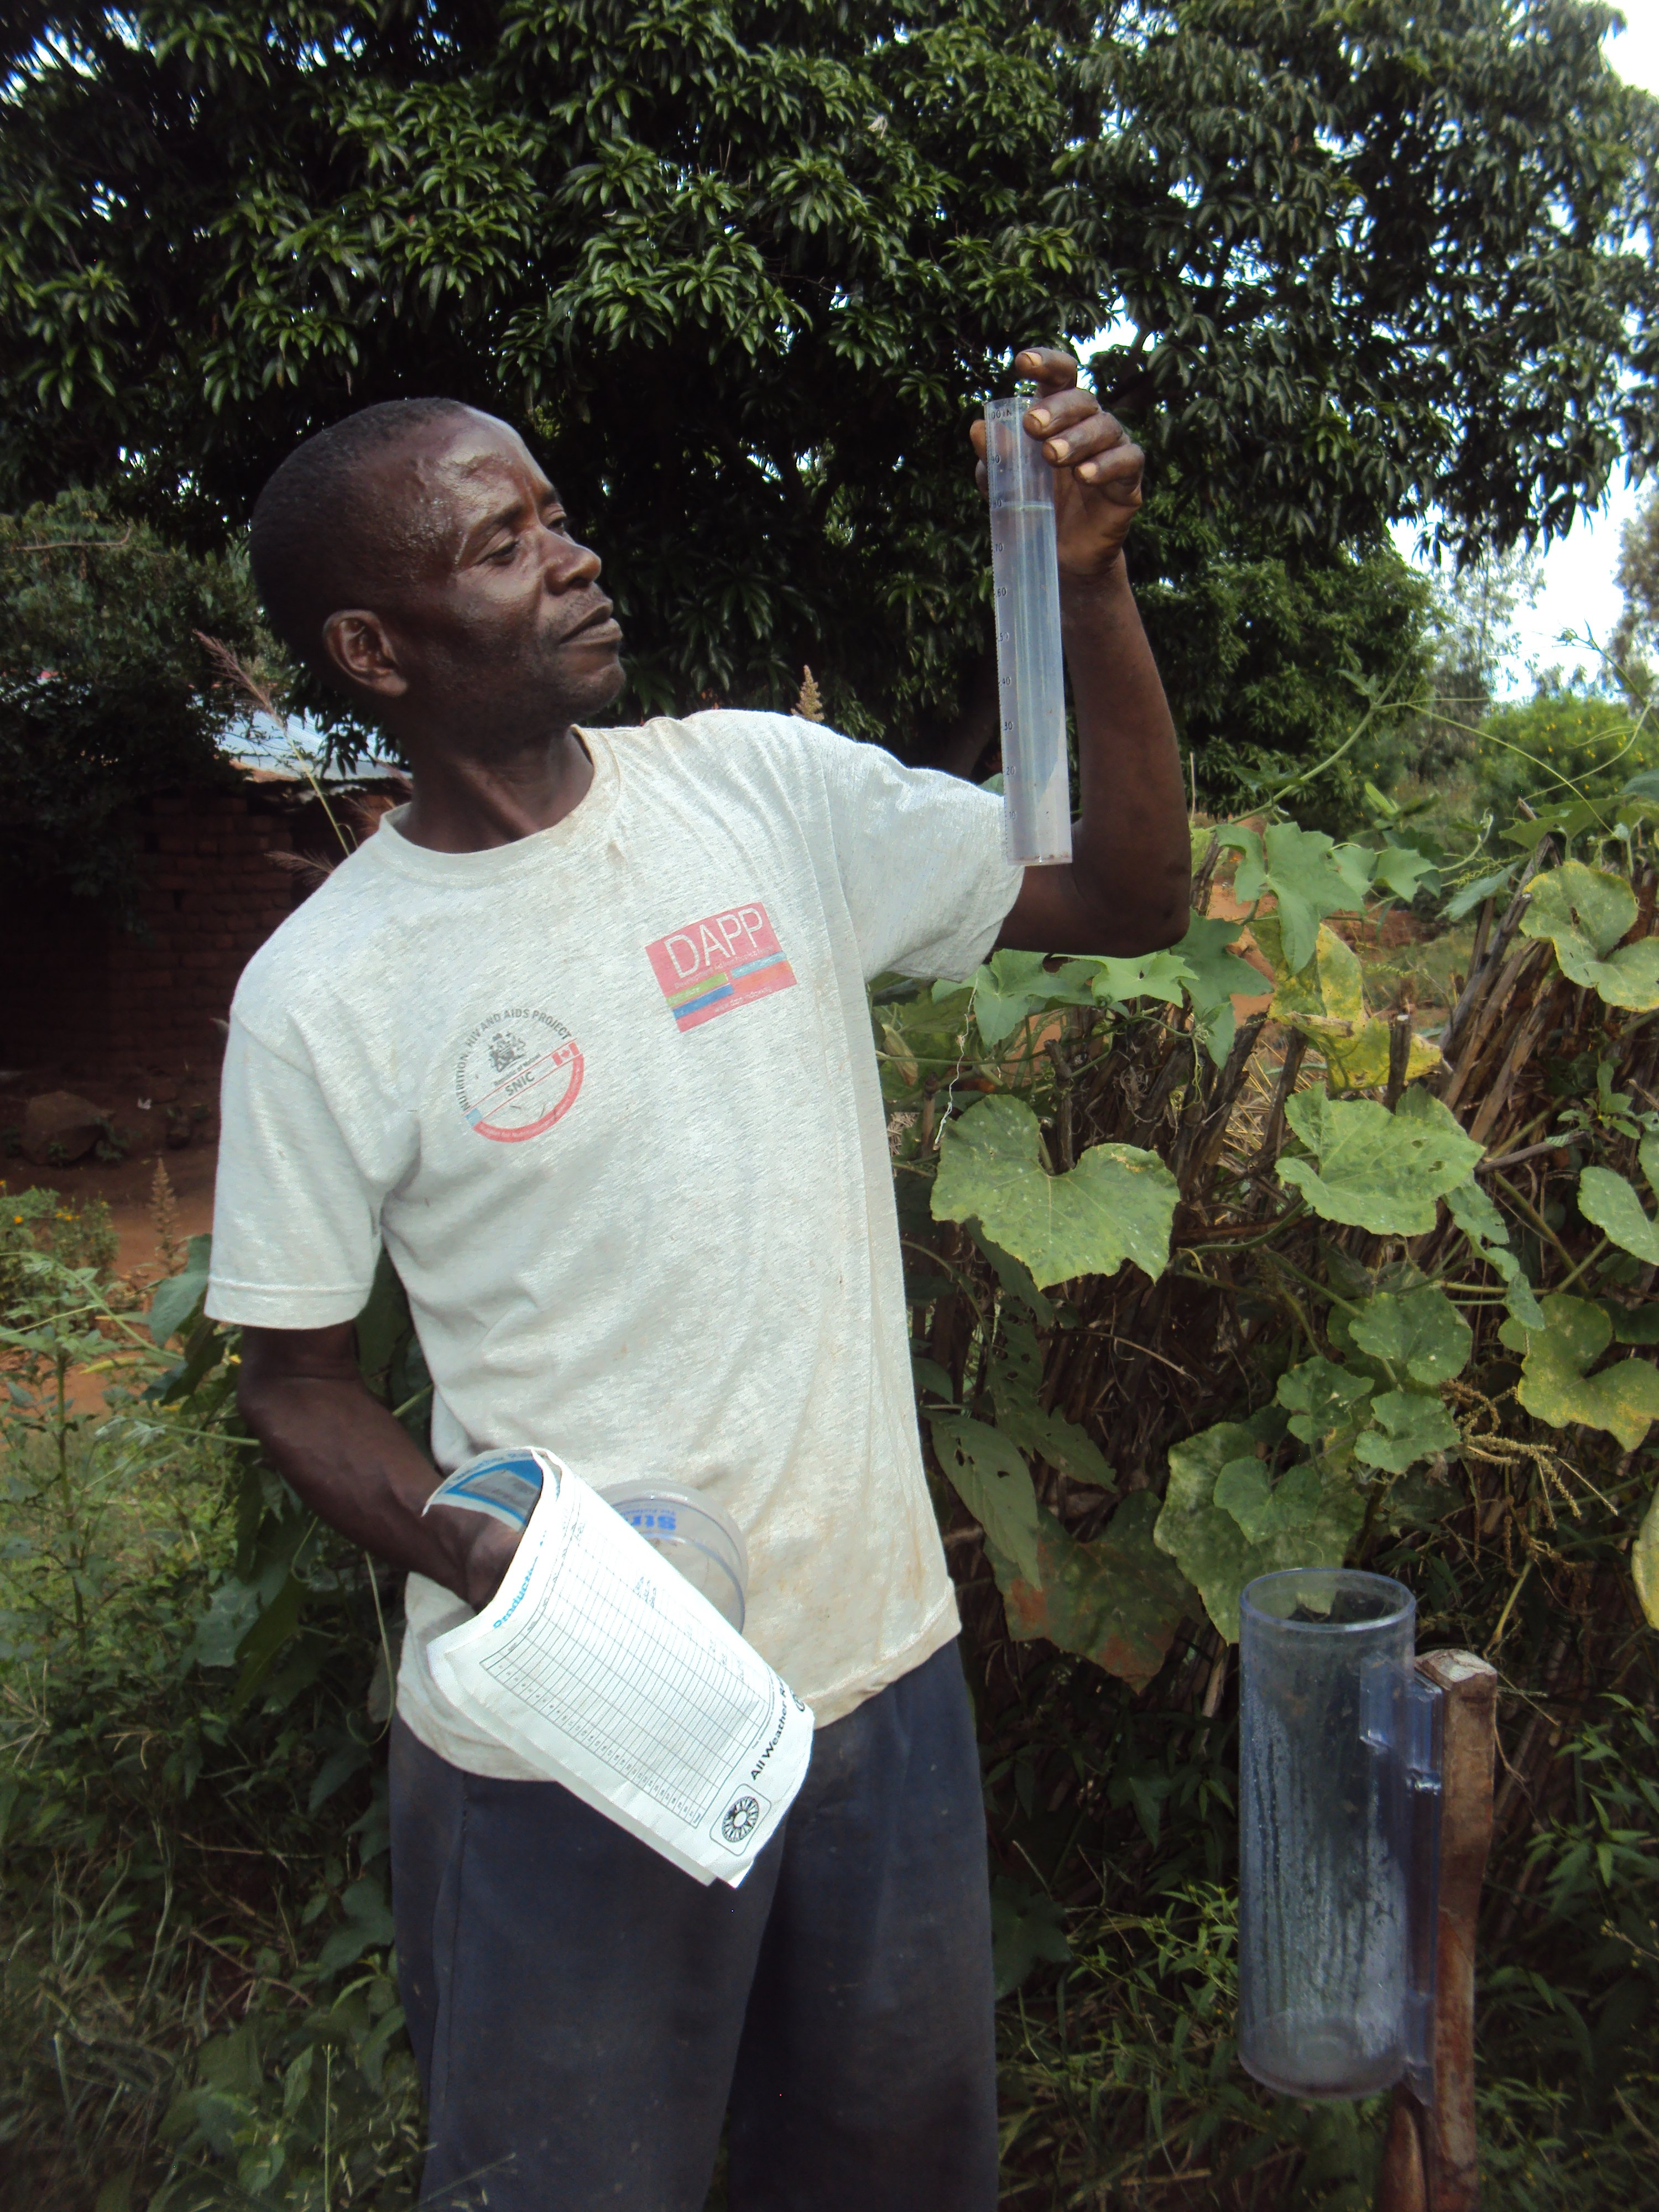 Farmer in Malawi takes rainfall recordings in an effort to combat erratic weather patterns and drought